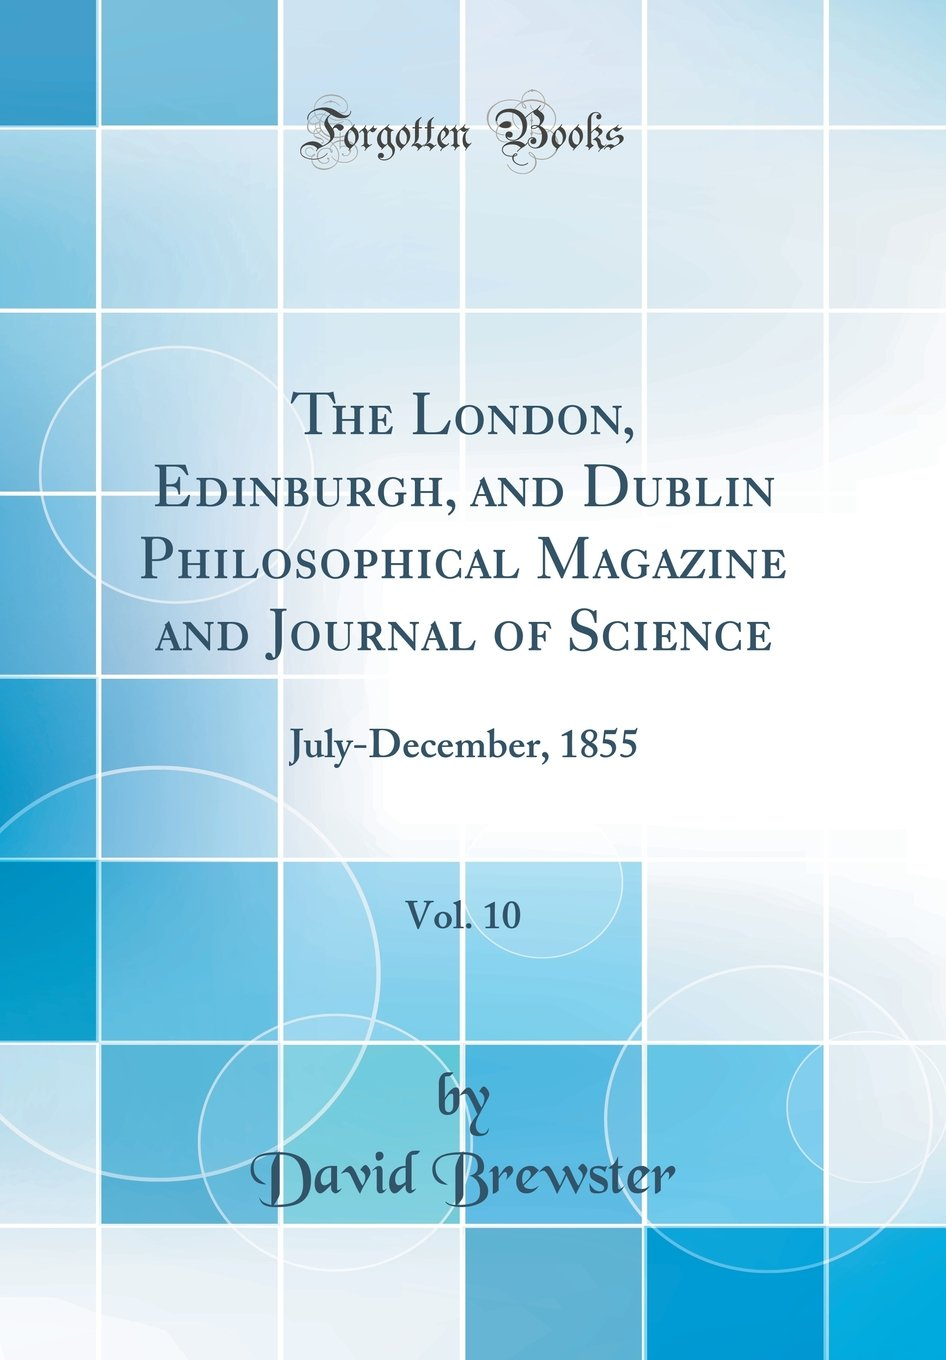 The London, Edinburgh, and Dublin Philosophical Magazine and Journal of Science, Vol. 10: July-December, 1855 (Classic Reprint) pdf epub